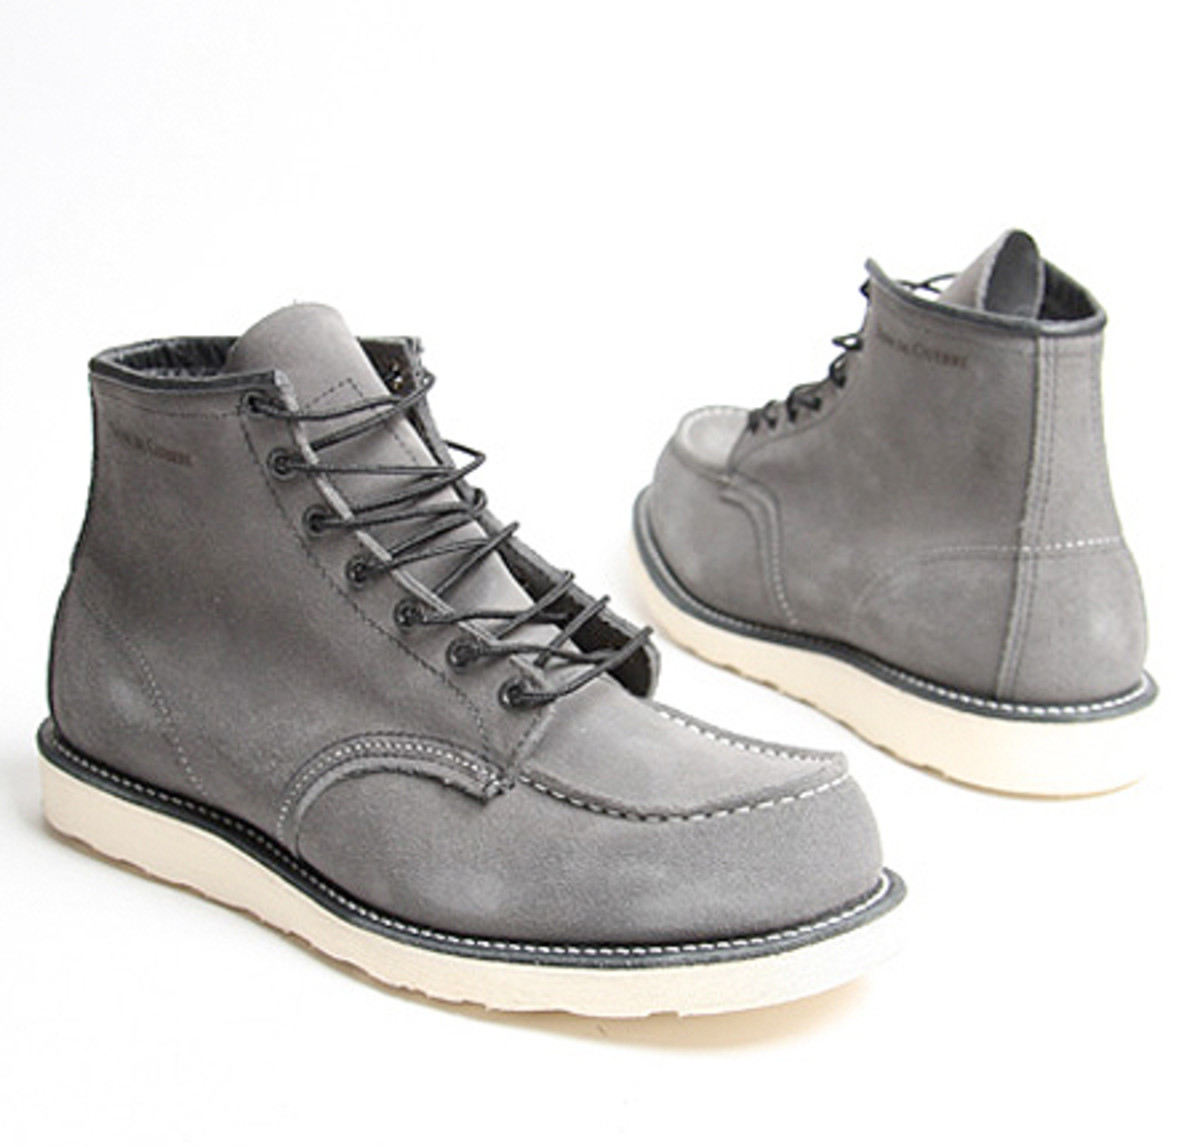 Red Wing Shoes Company x Nom De Guerre - Trench Protection Boots   Available @ oki-ni